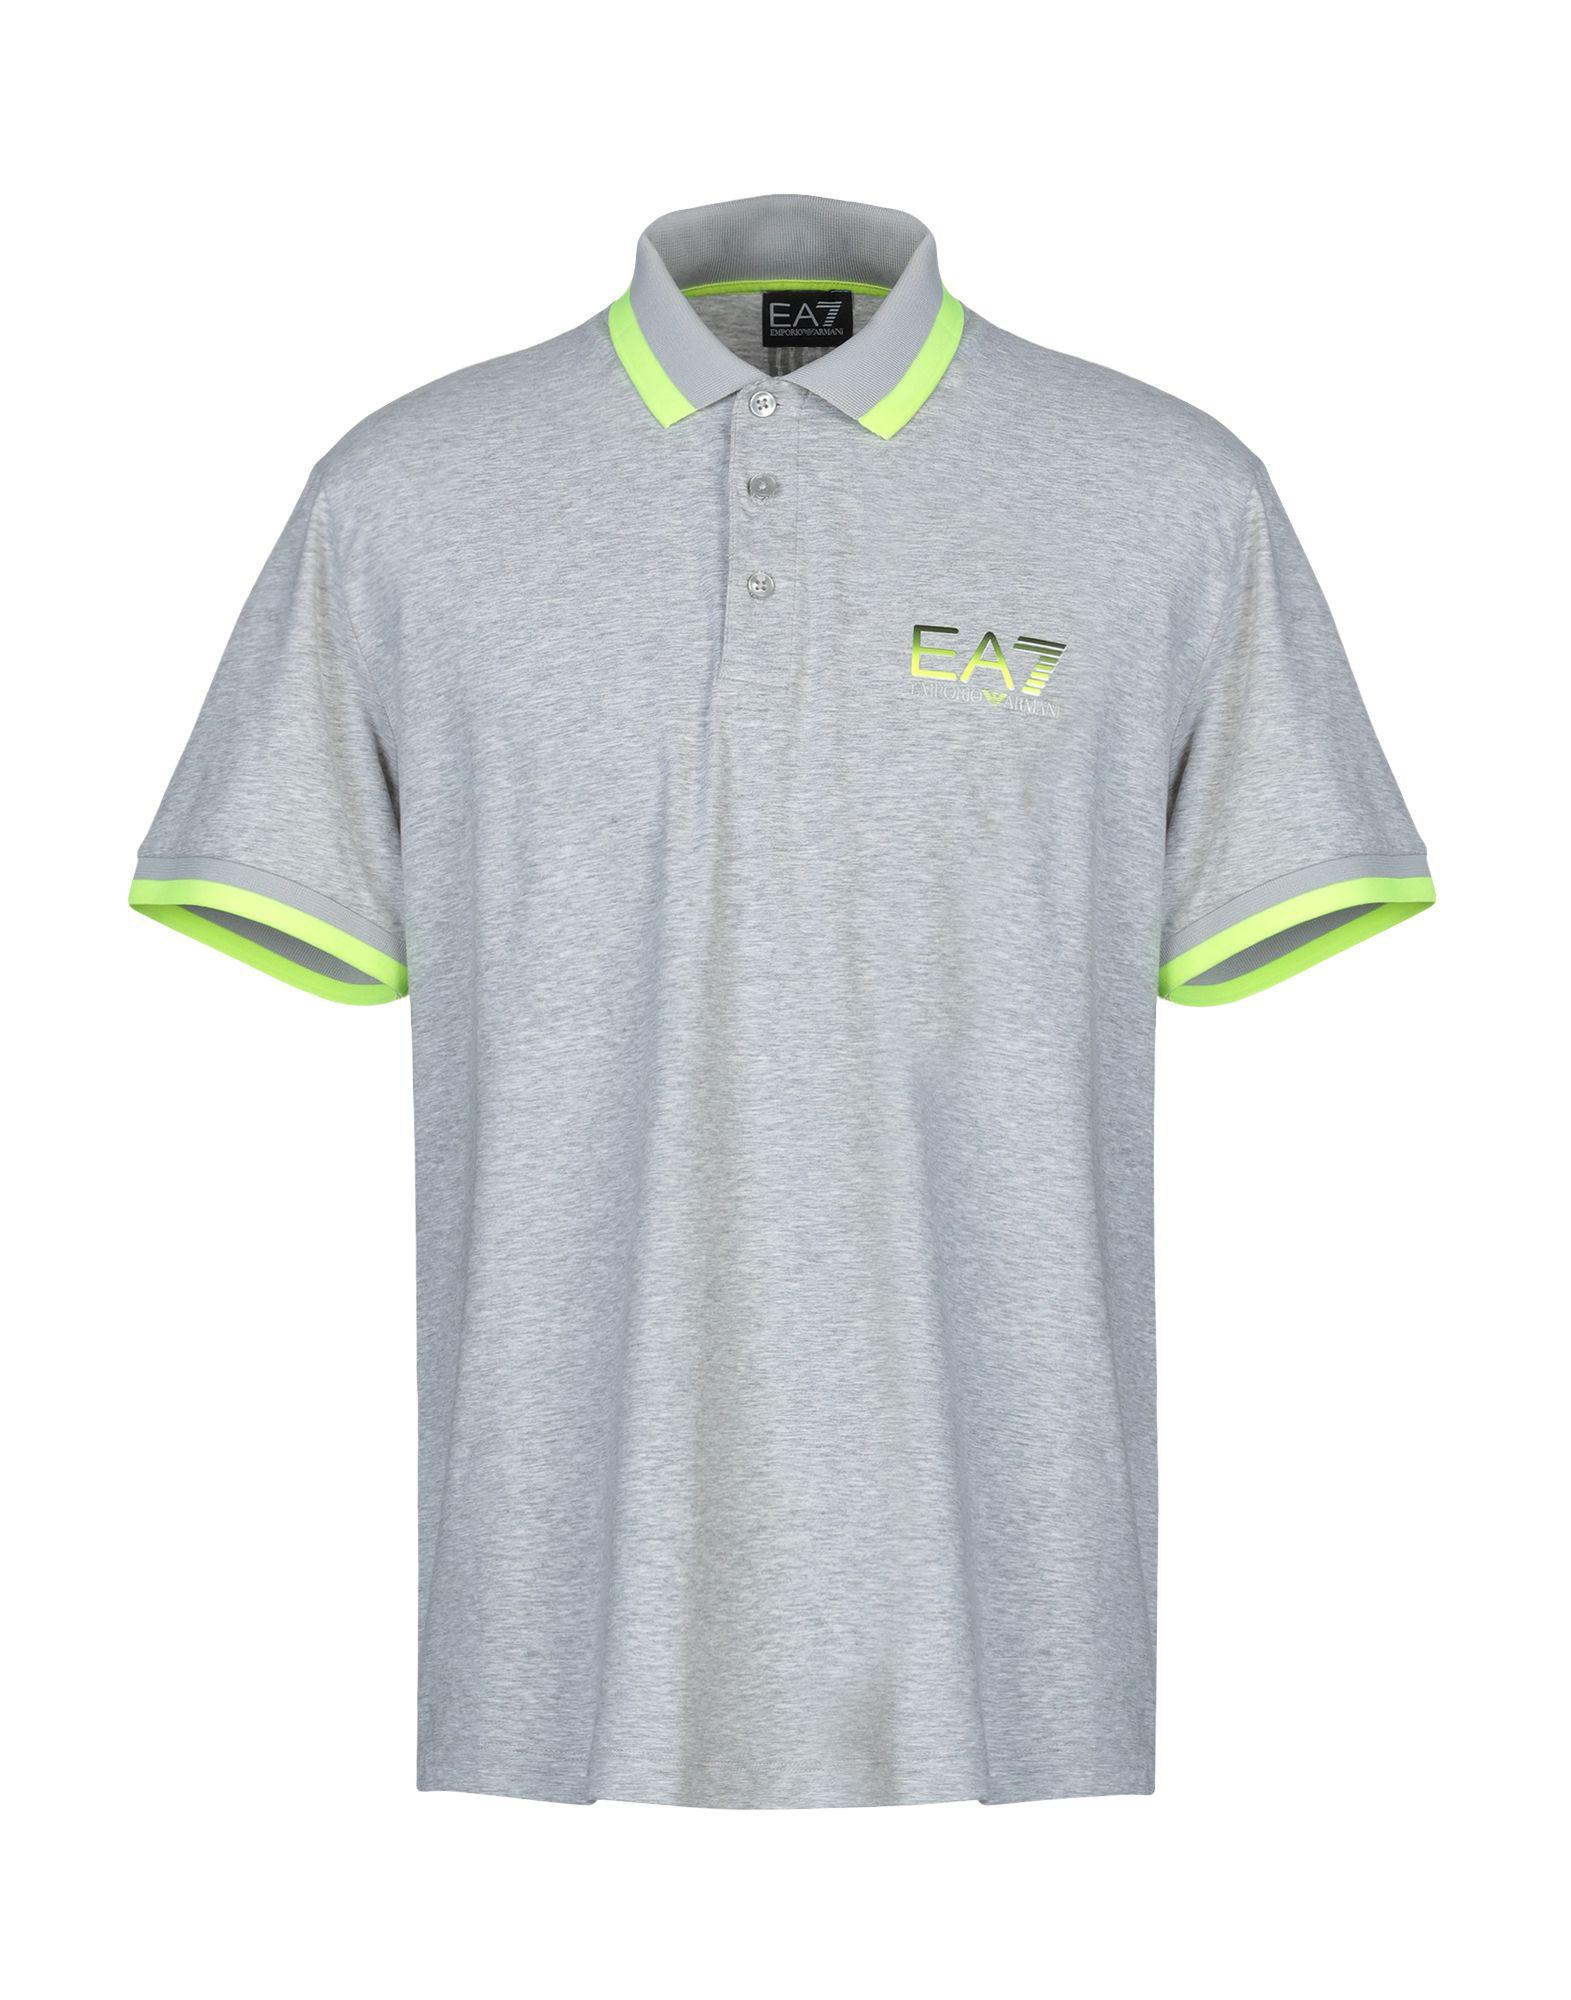 4992b591cb8 Lyst - Ea7 Polo Shirt in Gray for Men